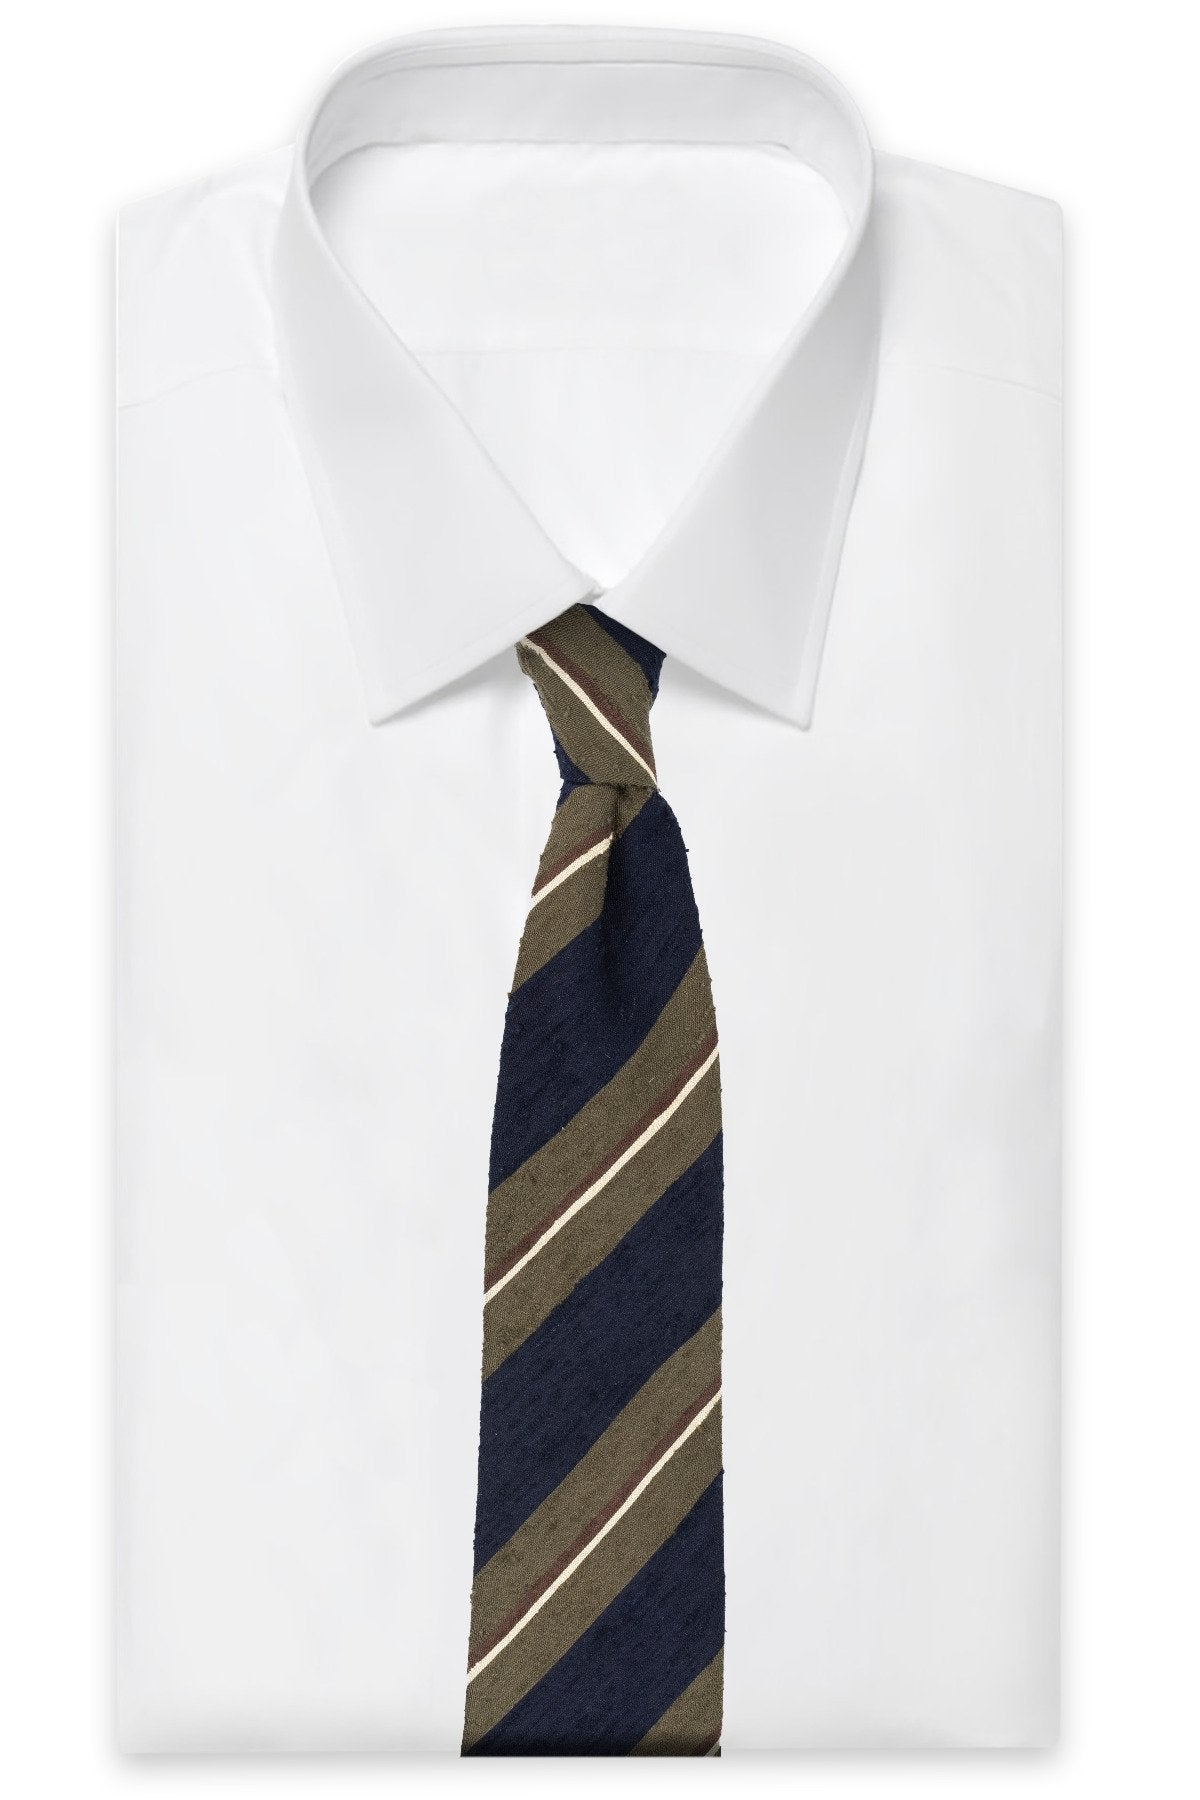 AN IVY Slips Navy Olive Green Shantung Tie